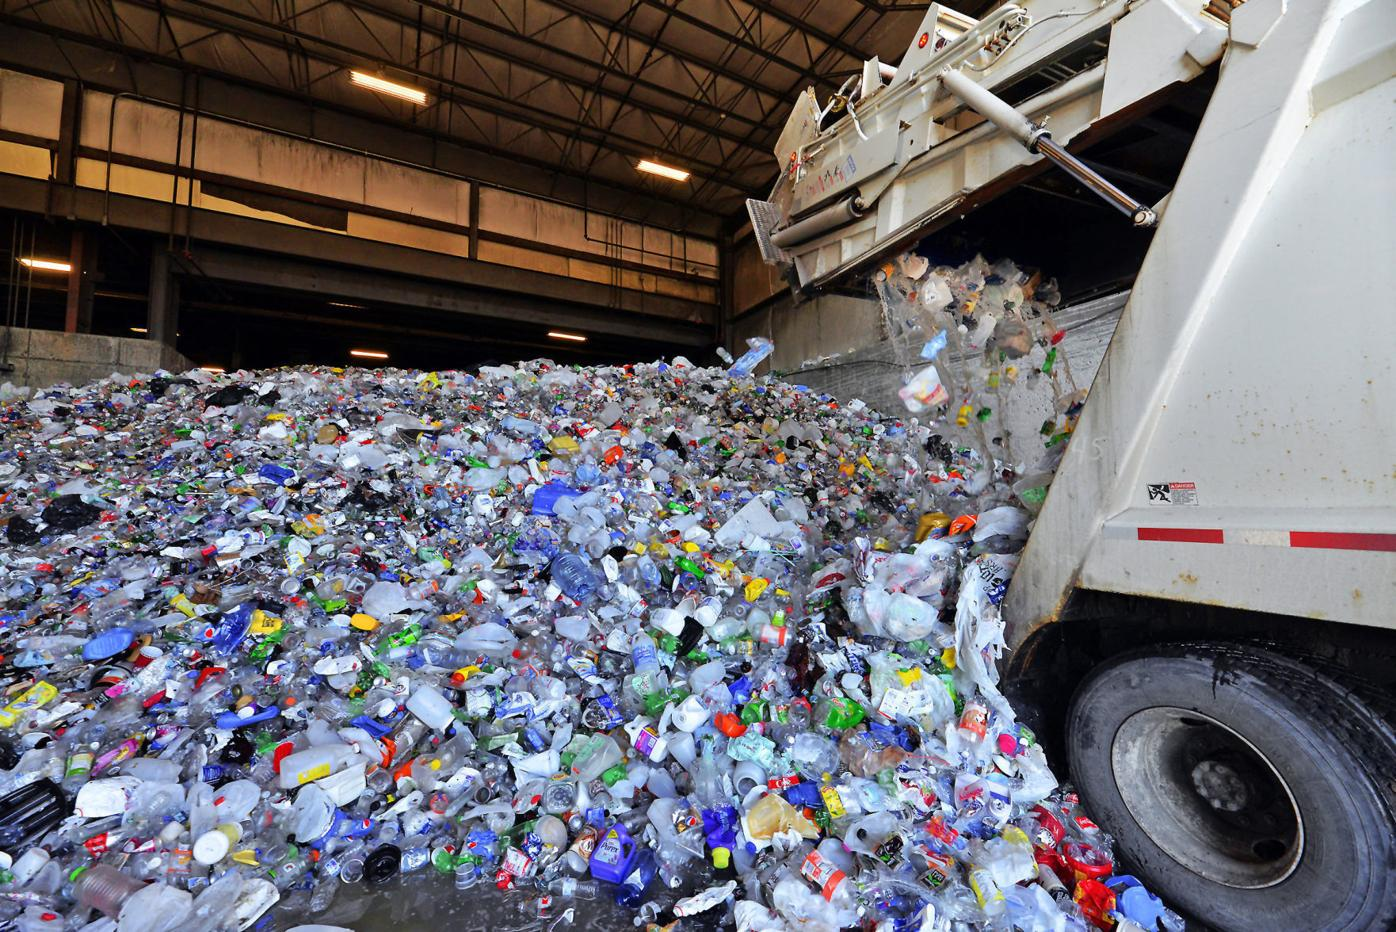 Recycling center operator to charge municipalities for bottles, cans and jars